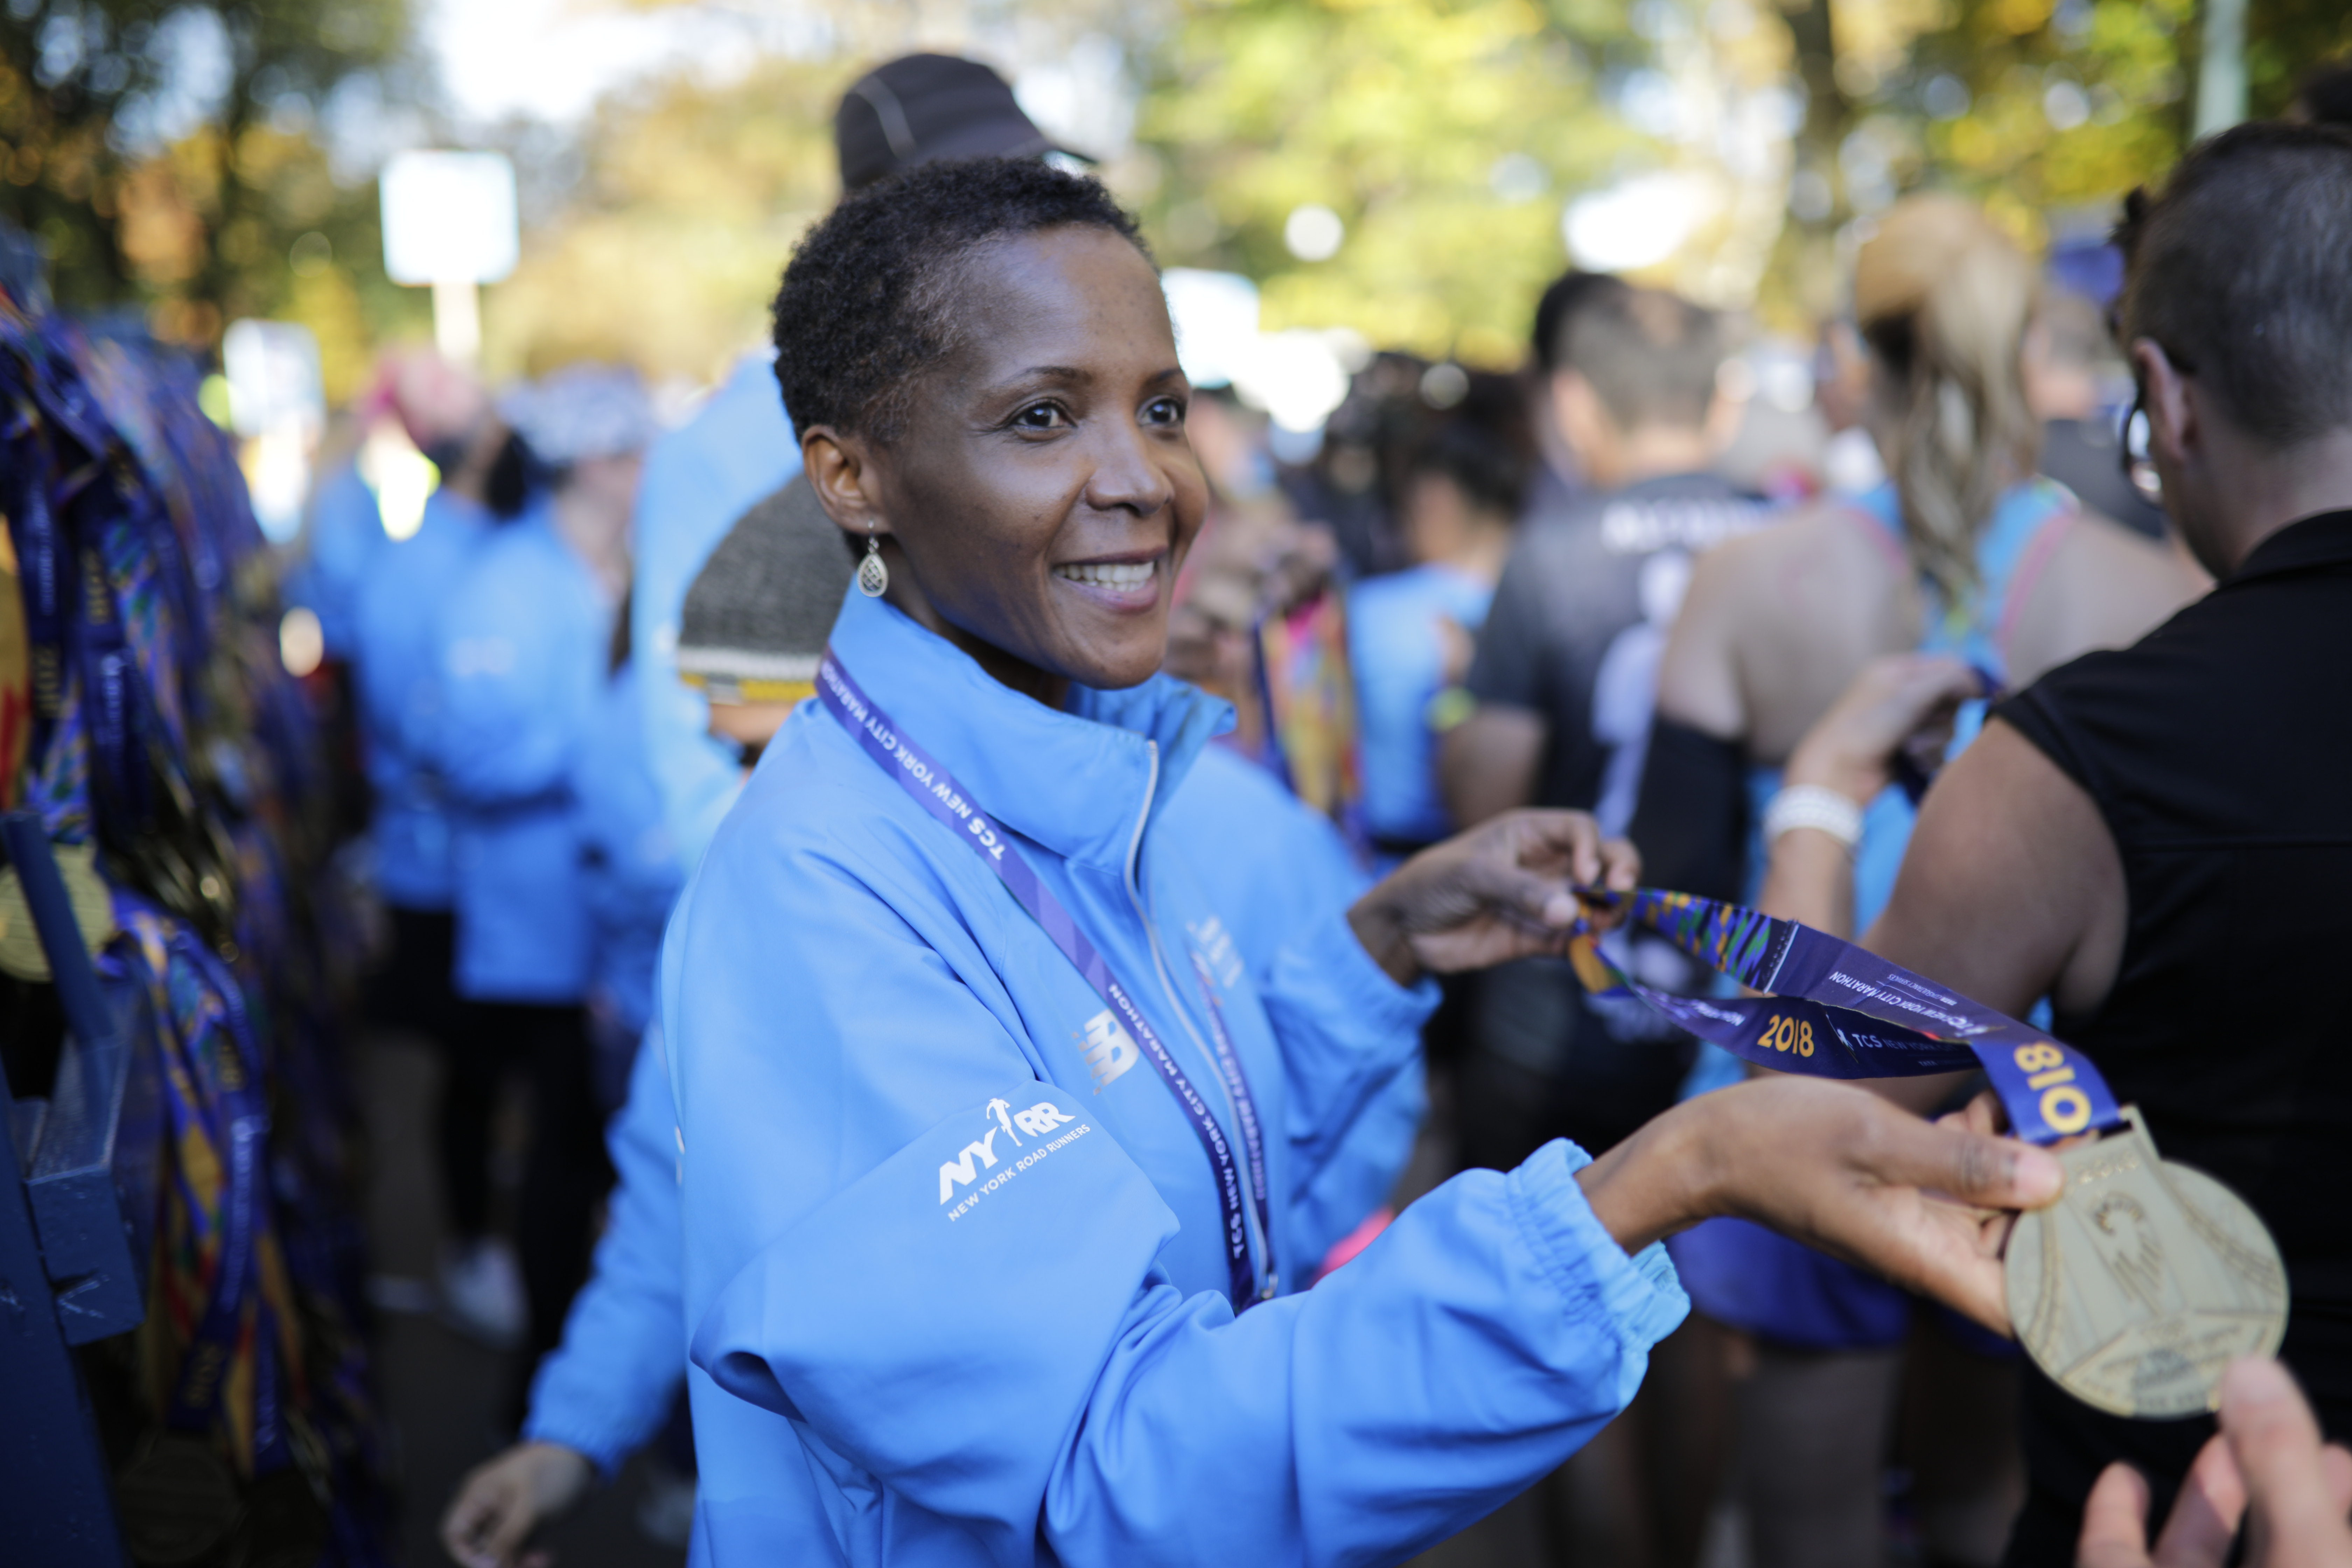 A volunteer handing out medals at the New York City Marathon finish area